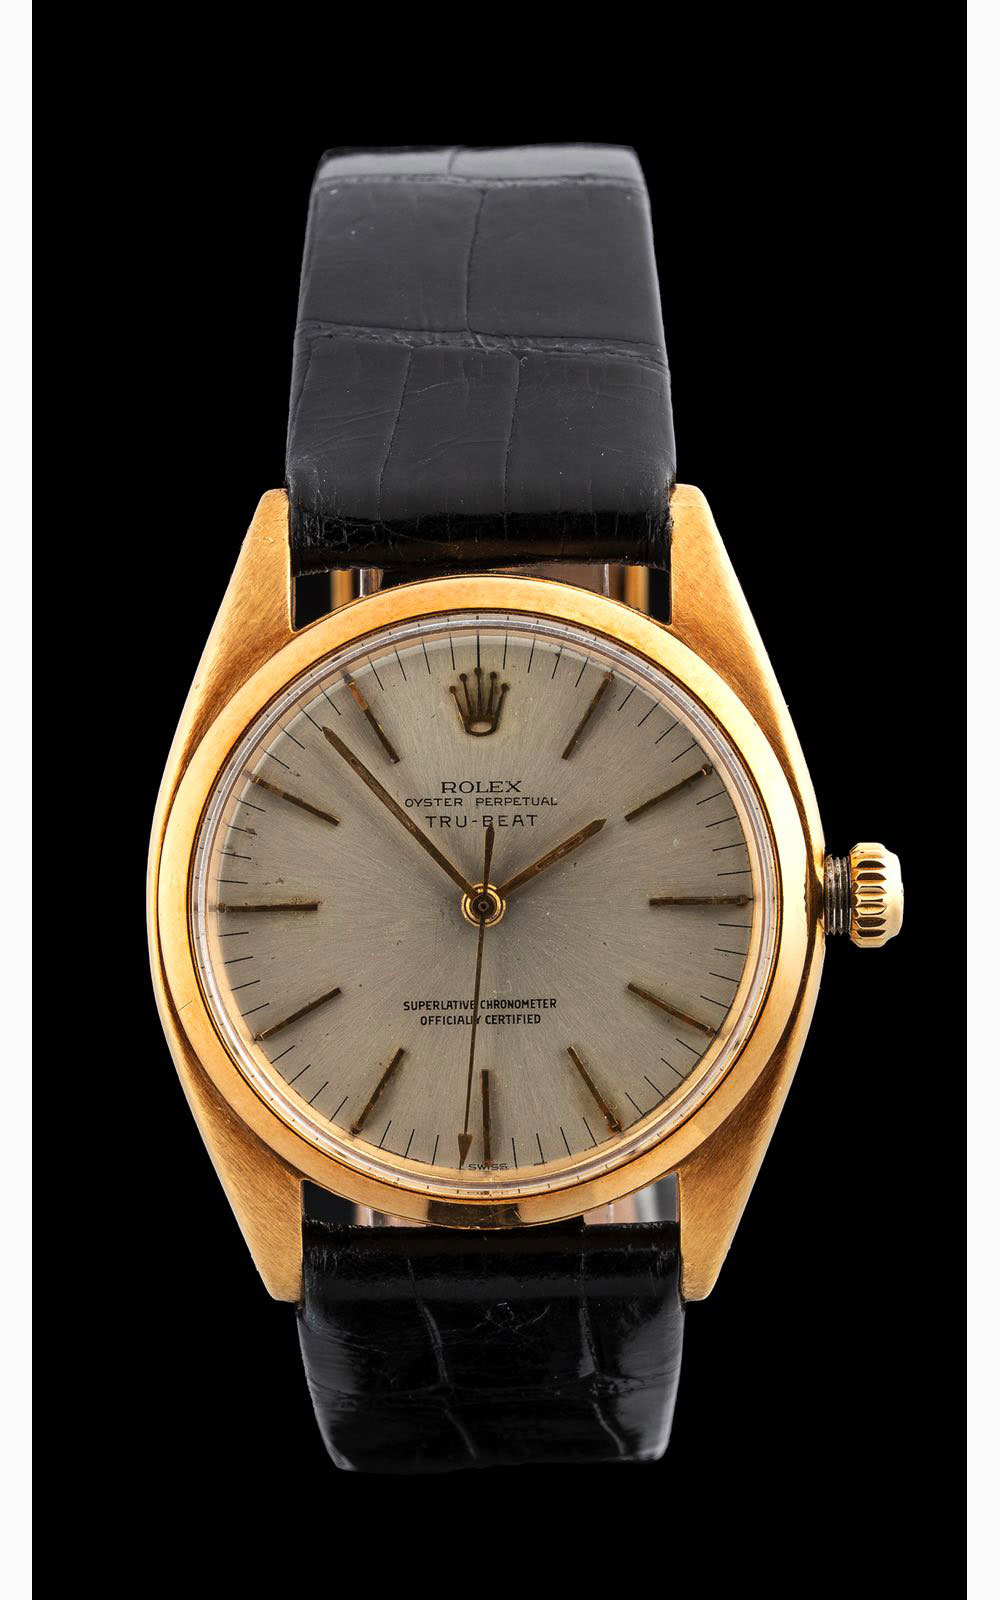 Rolex TRU-BEAT ref 6556 yellow gold, 1955